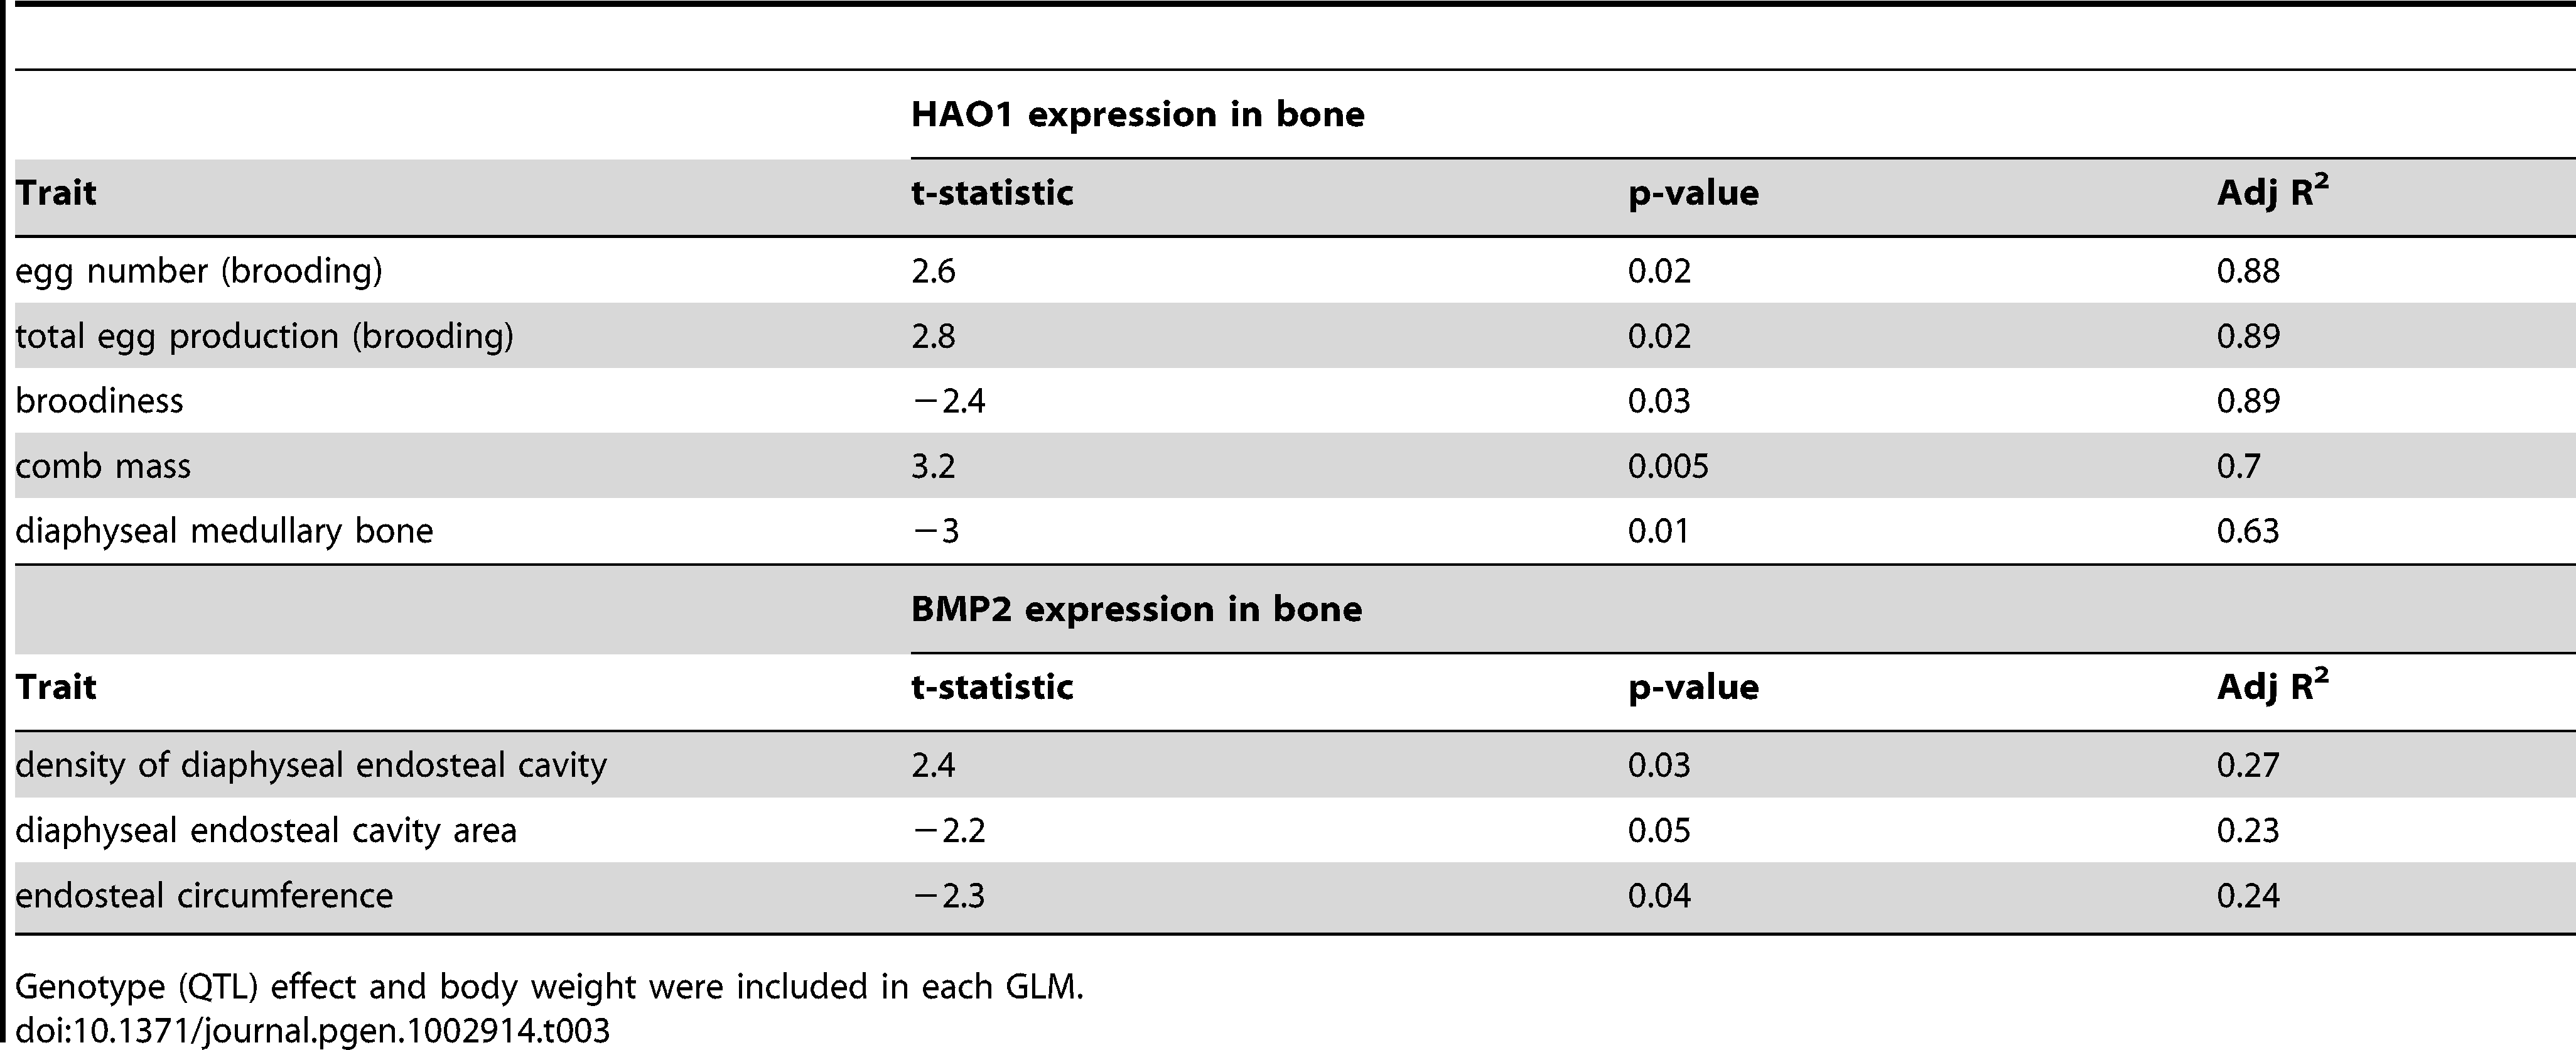 Additional fecundity and bone morphometric traits correlated with <i>HAO1</i> and <i>BMP2</i> expression in bone samples.